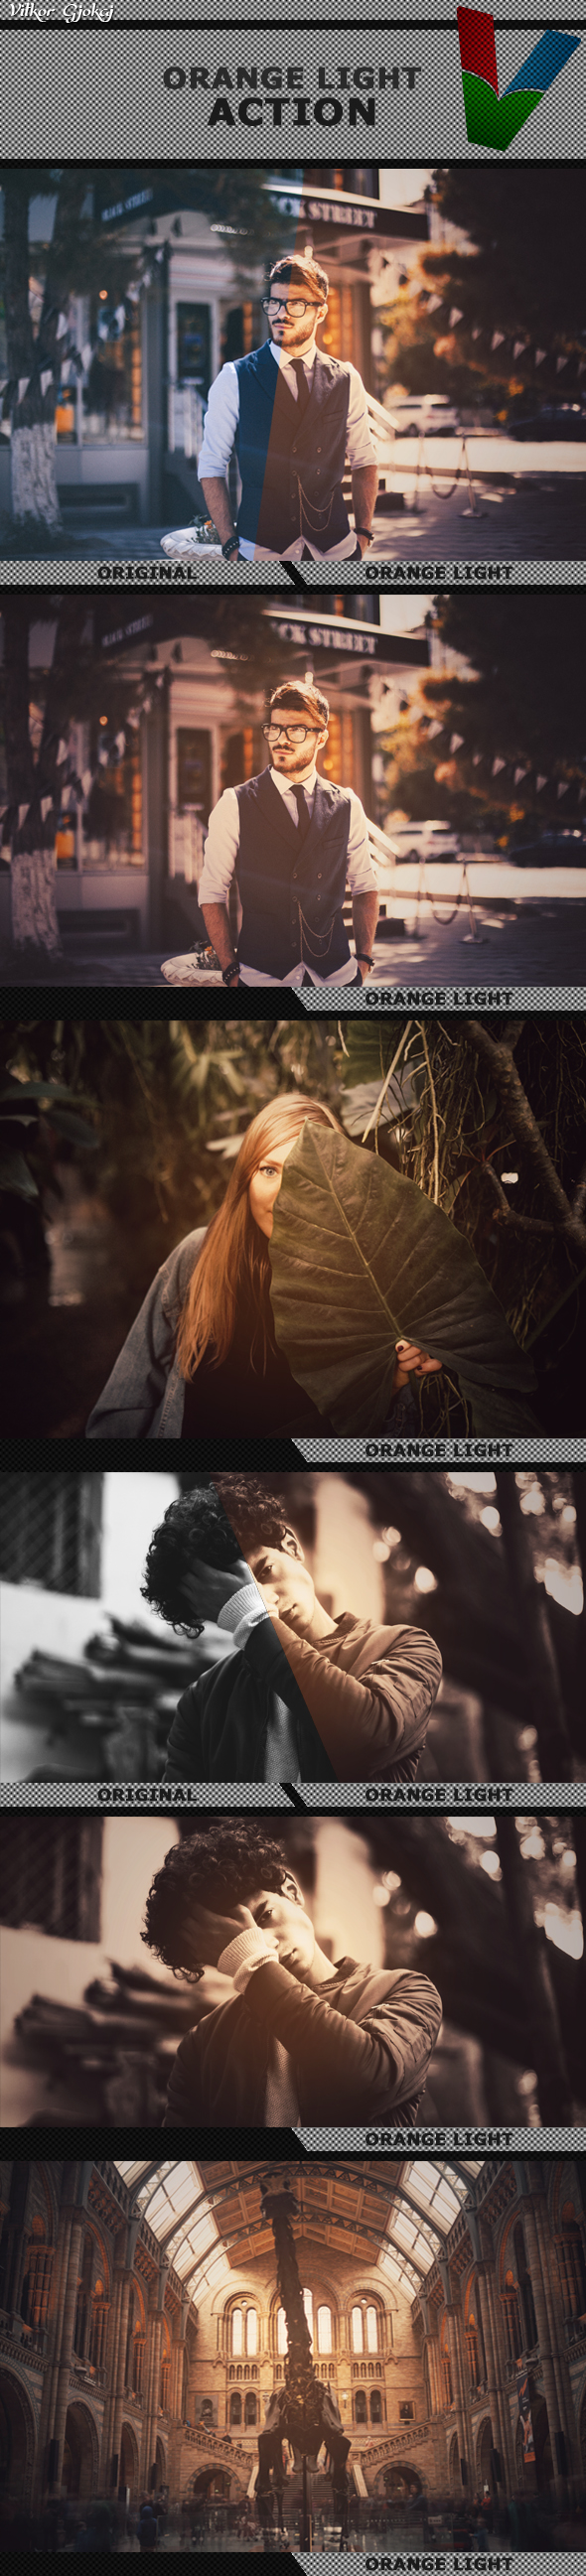 Orange Light Action - Photo Effects Actions